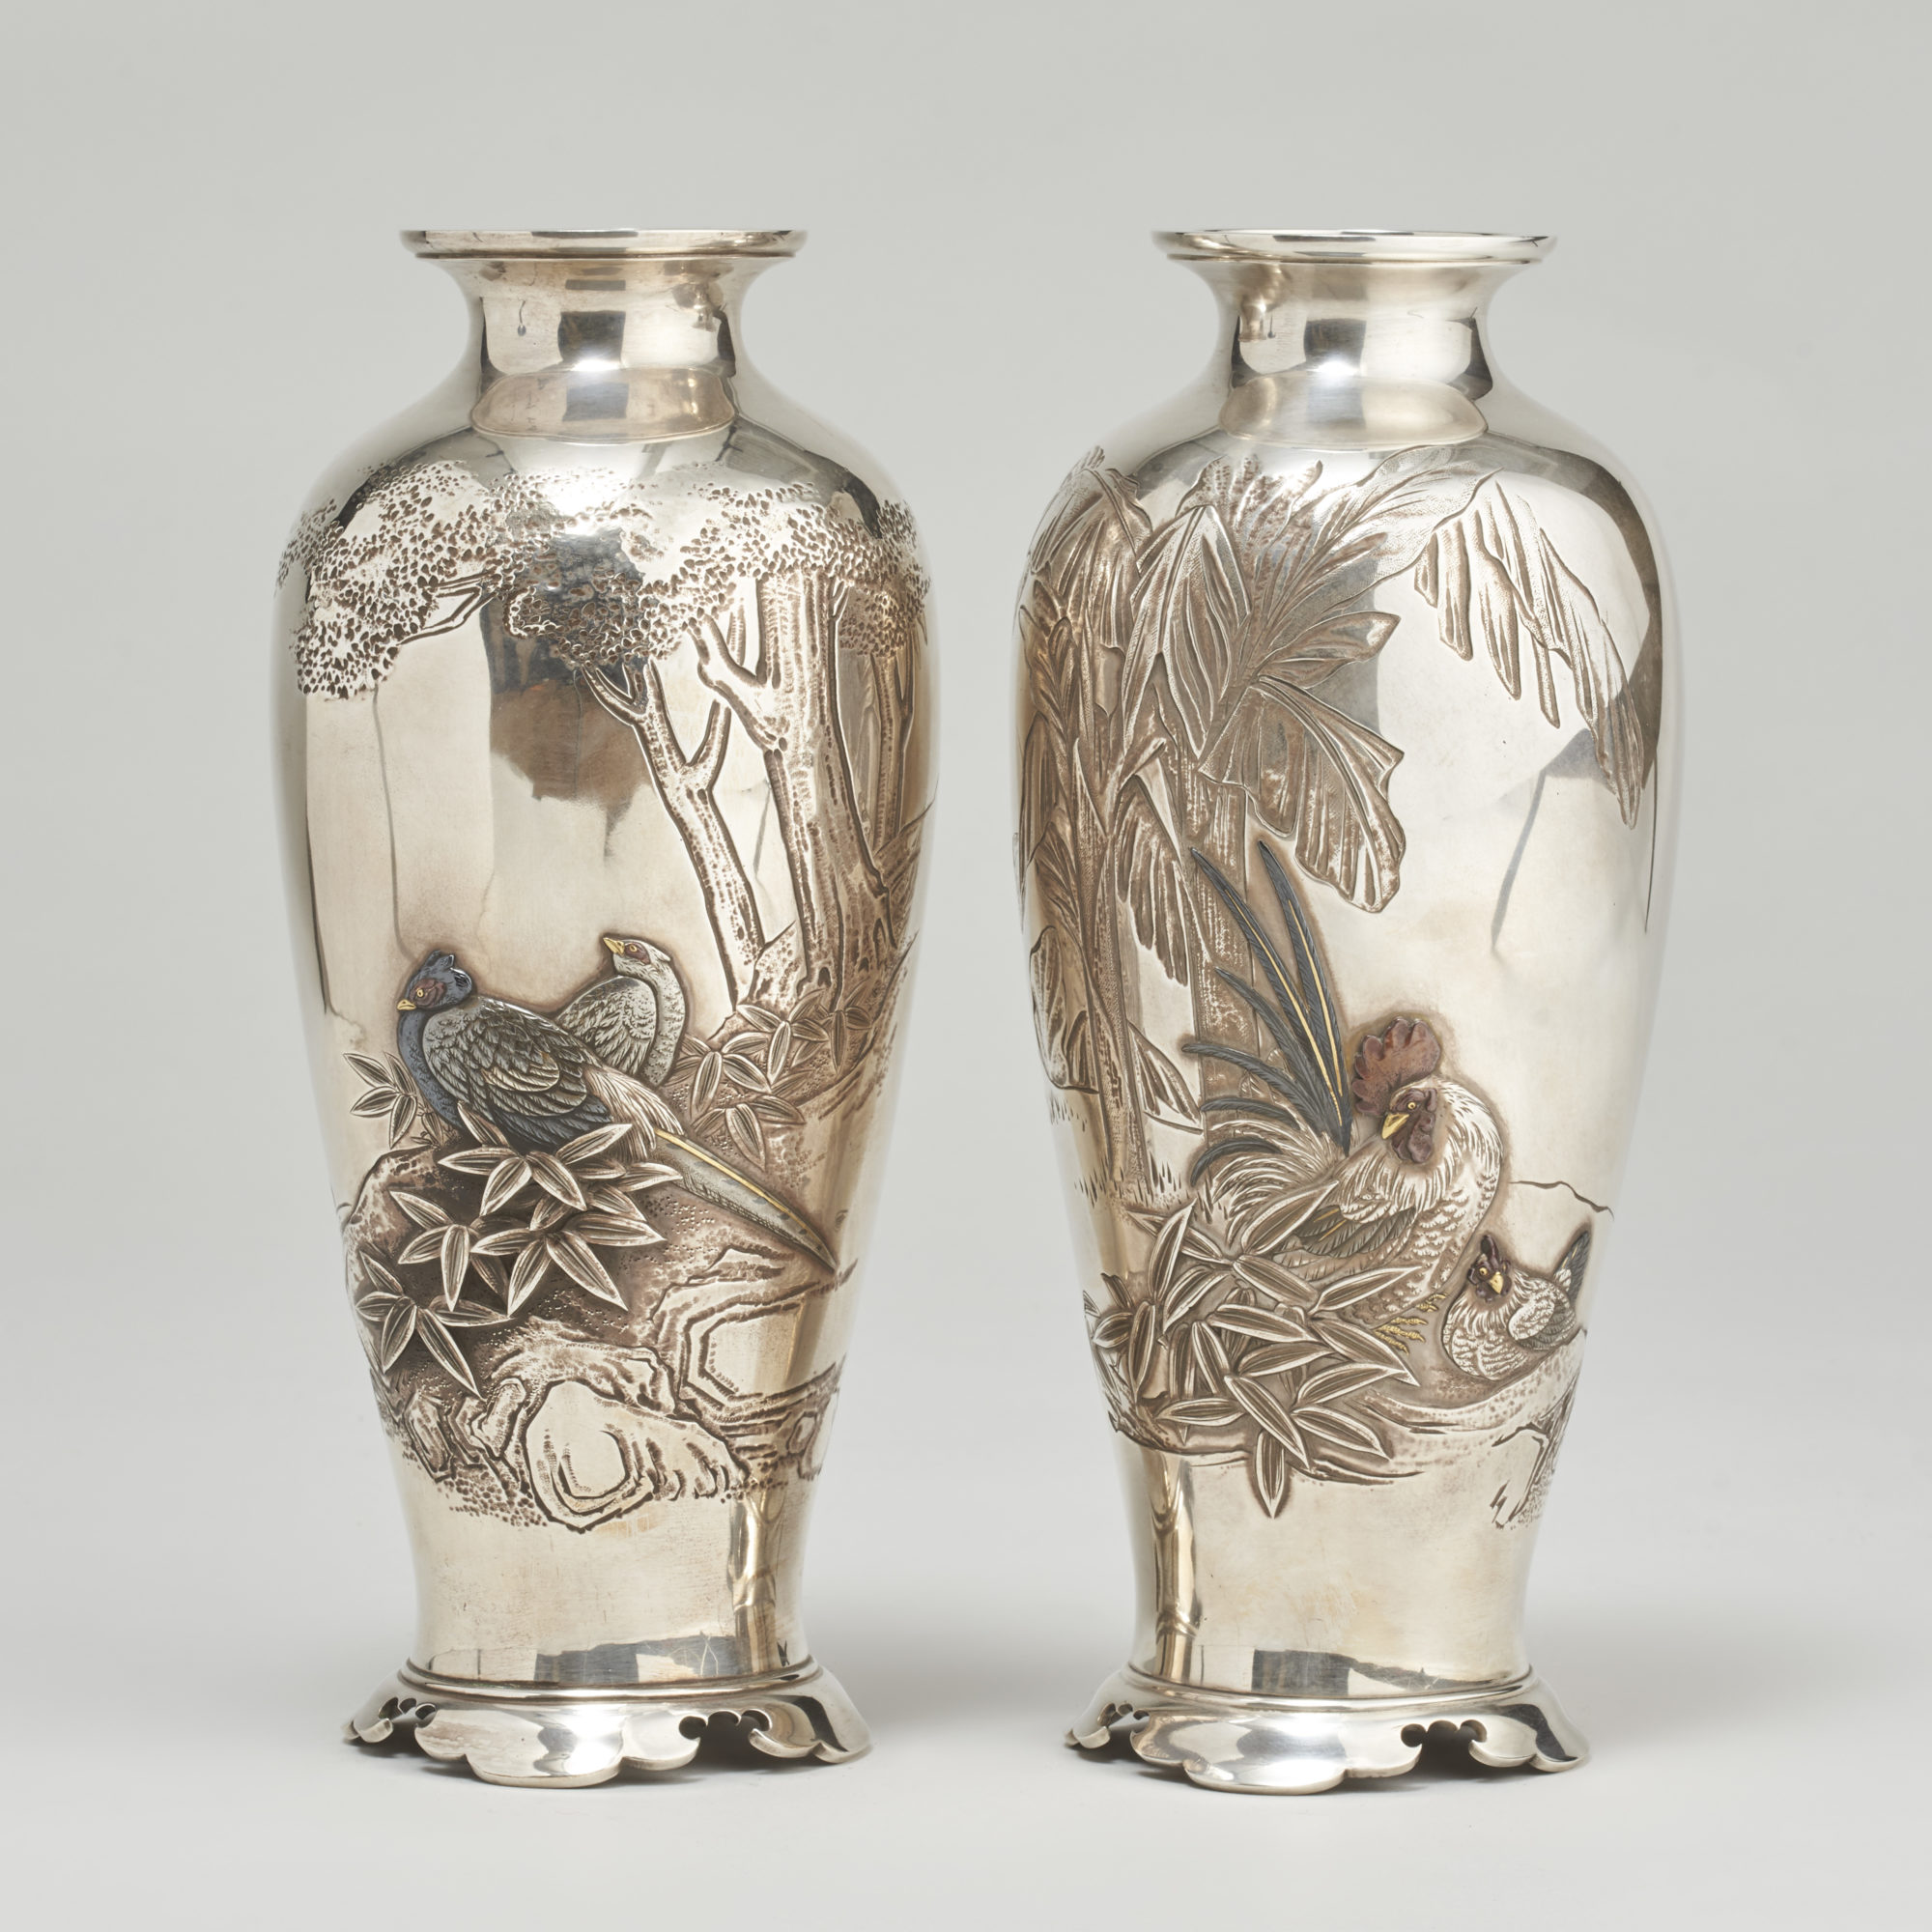 Japanese silver ware   A beautiful pair of Japanese Meiji-era Silver vases (1868-1912)